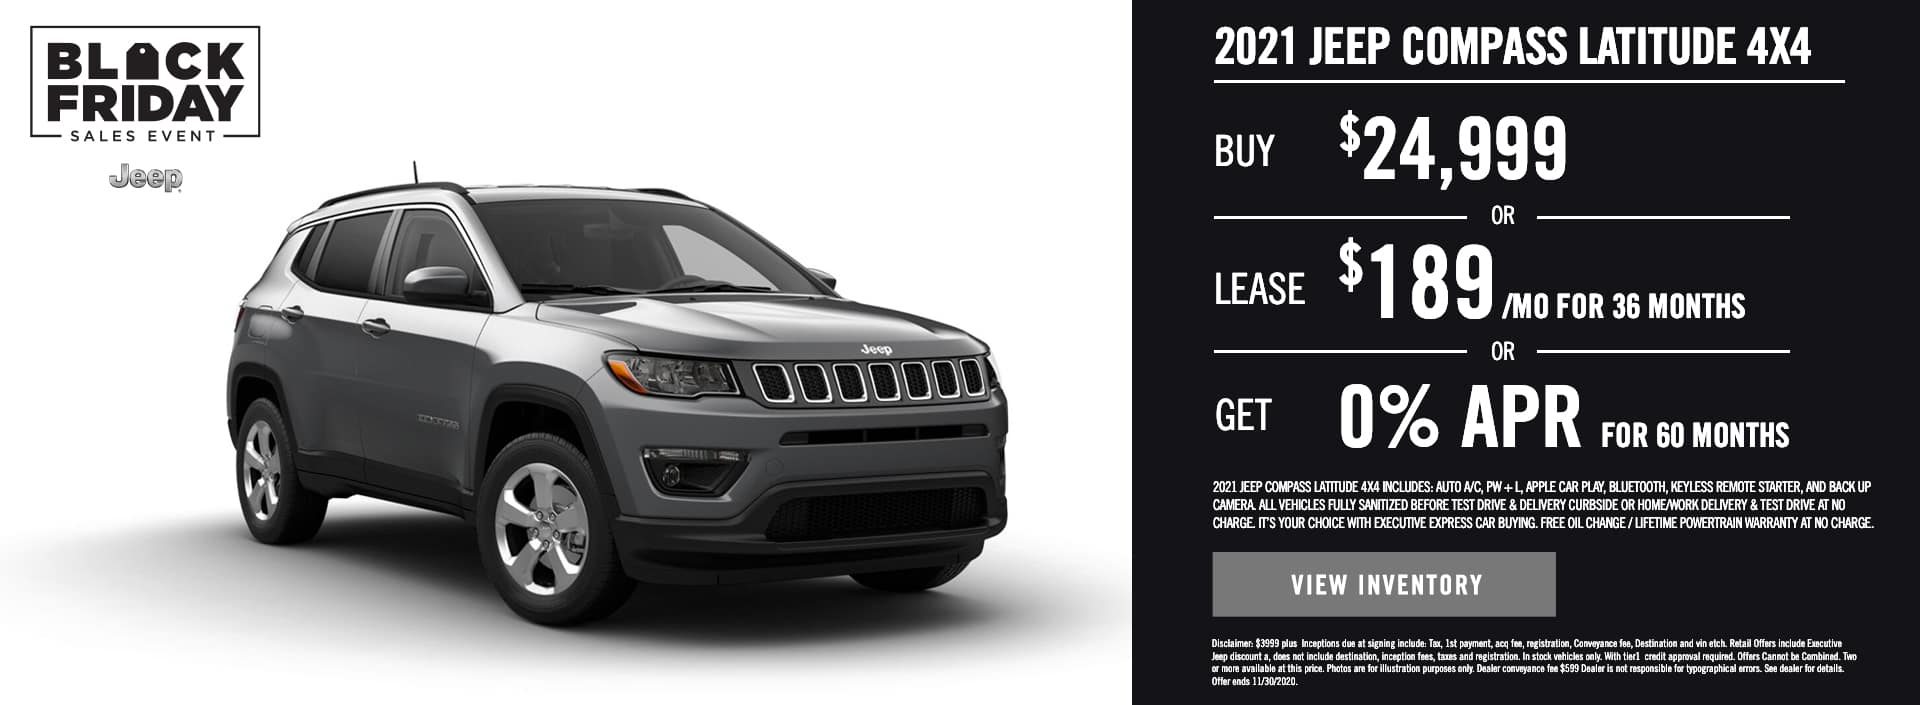 2021 Jeep Compass Latitude 4×4 (1)